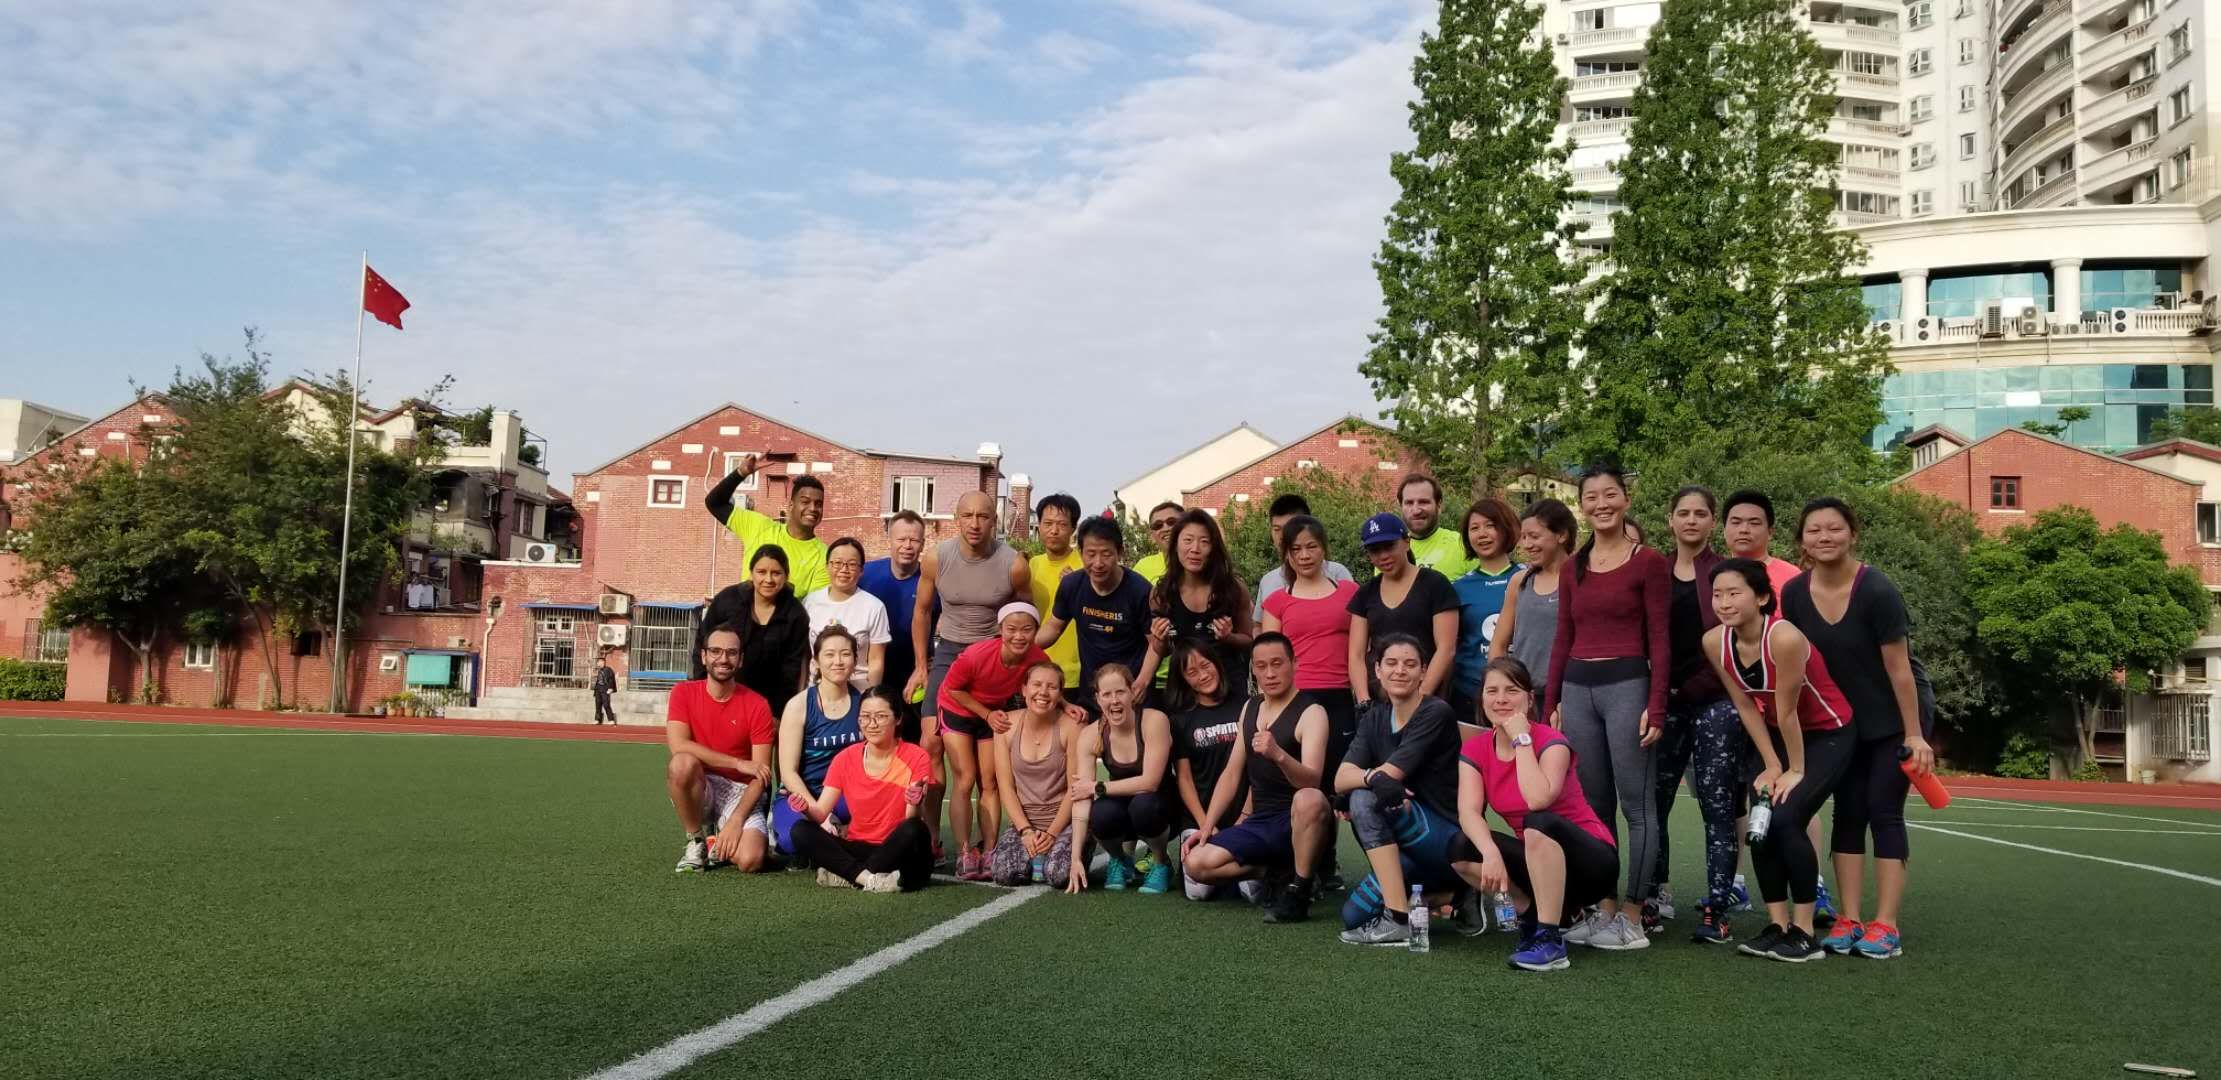 Steven and the rest of our SBC workout crew in Shanghai, April 28th, 2018